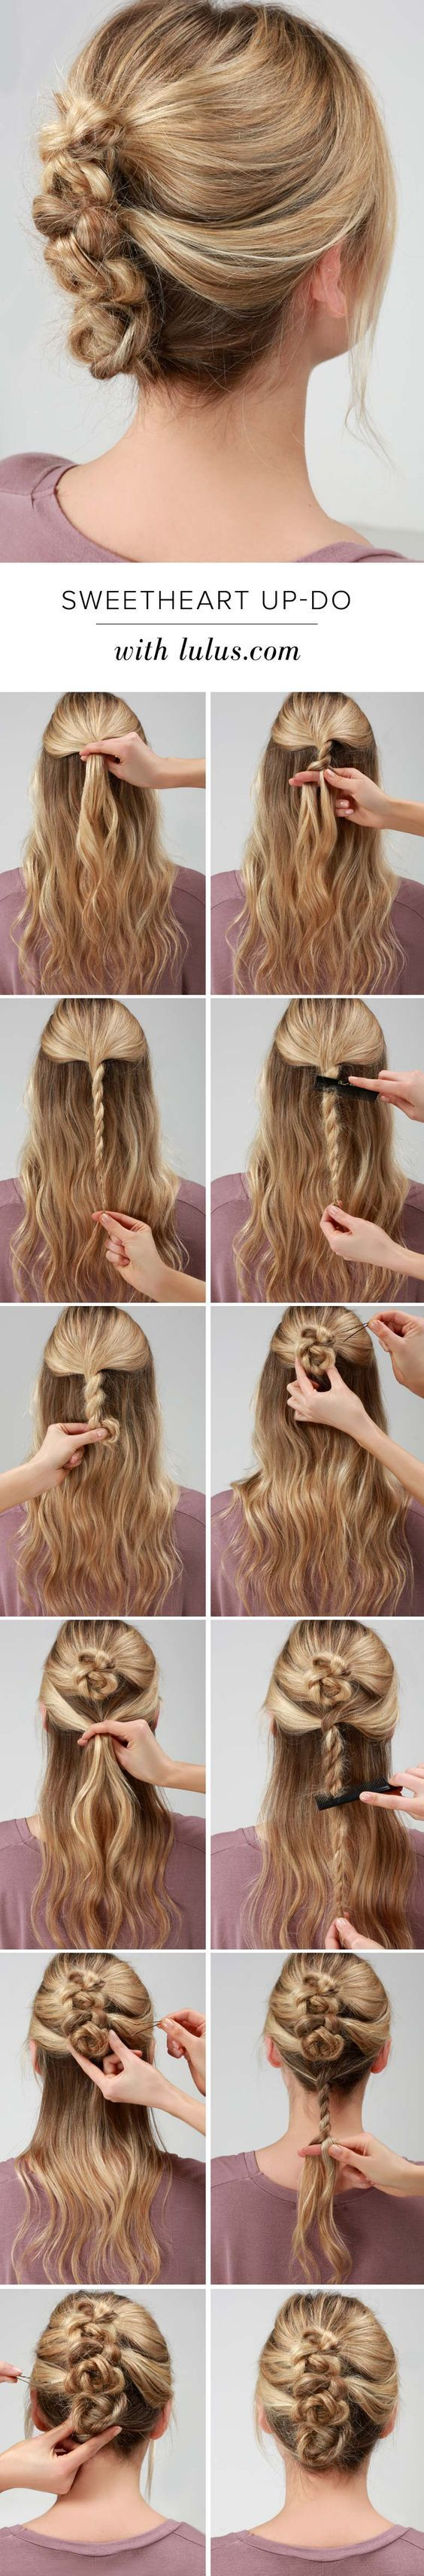 Classy And Simple Hairstyle Ideas For Thick Hair - Trend To Wear